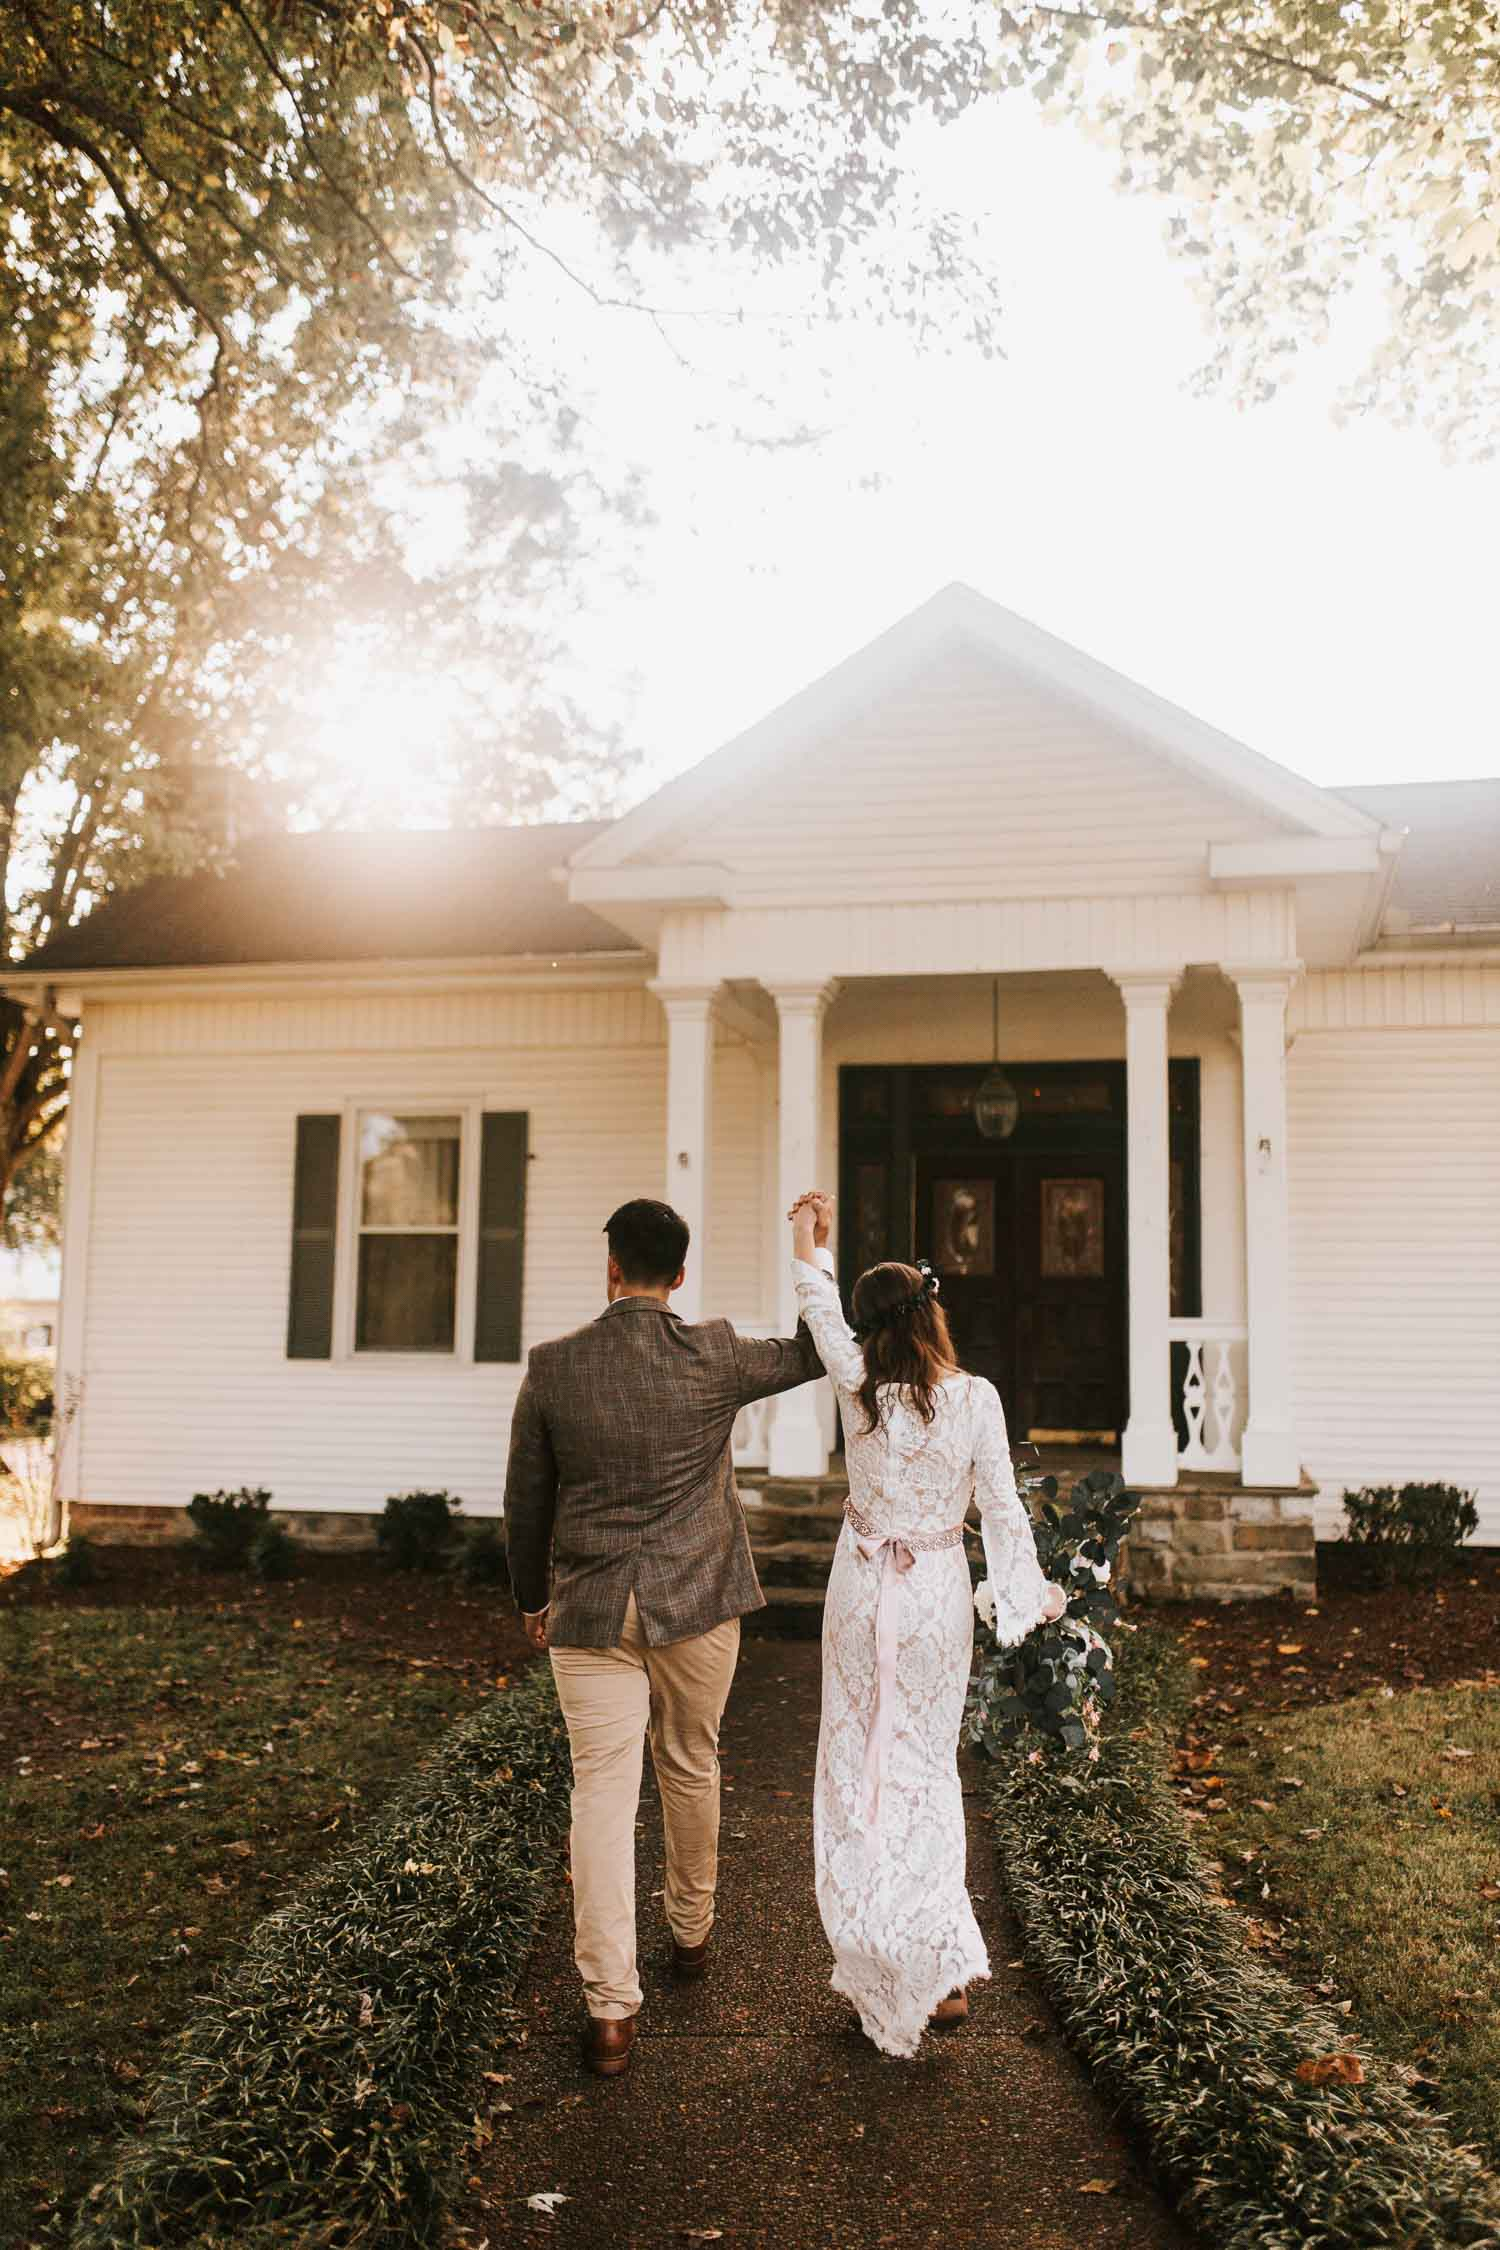 NashvilleWeddingPhotographer (18 of 44).jpg